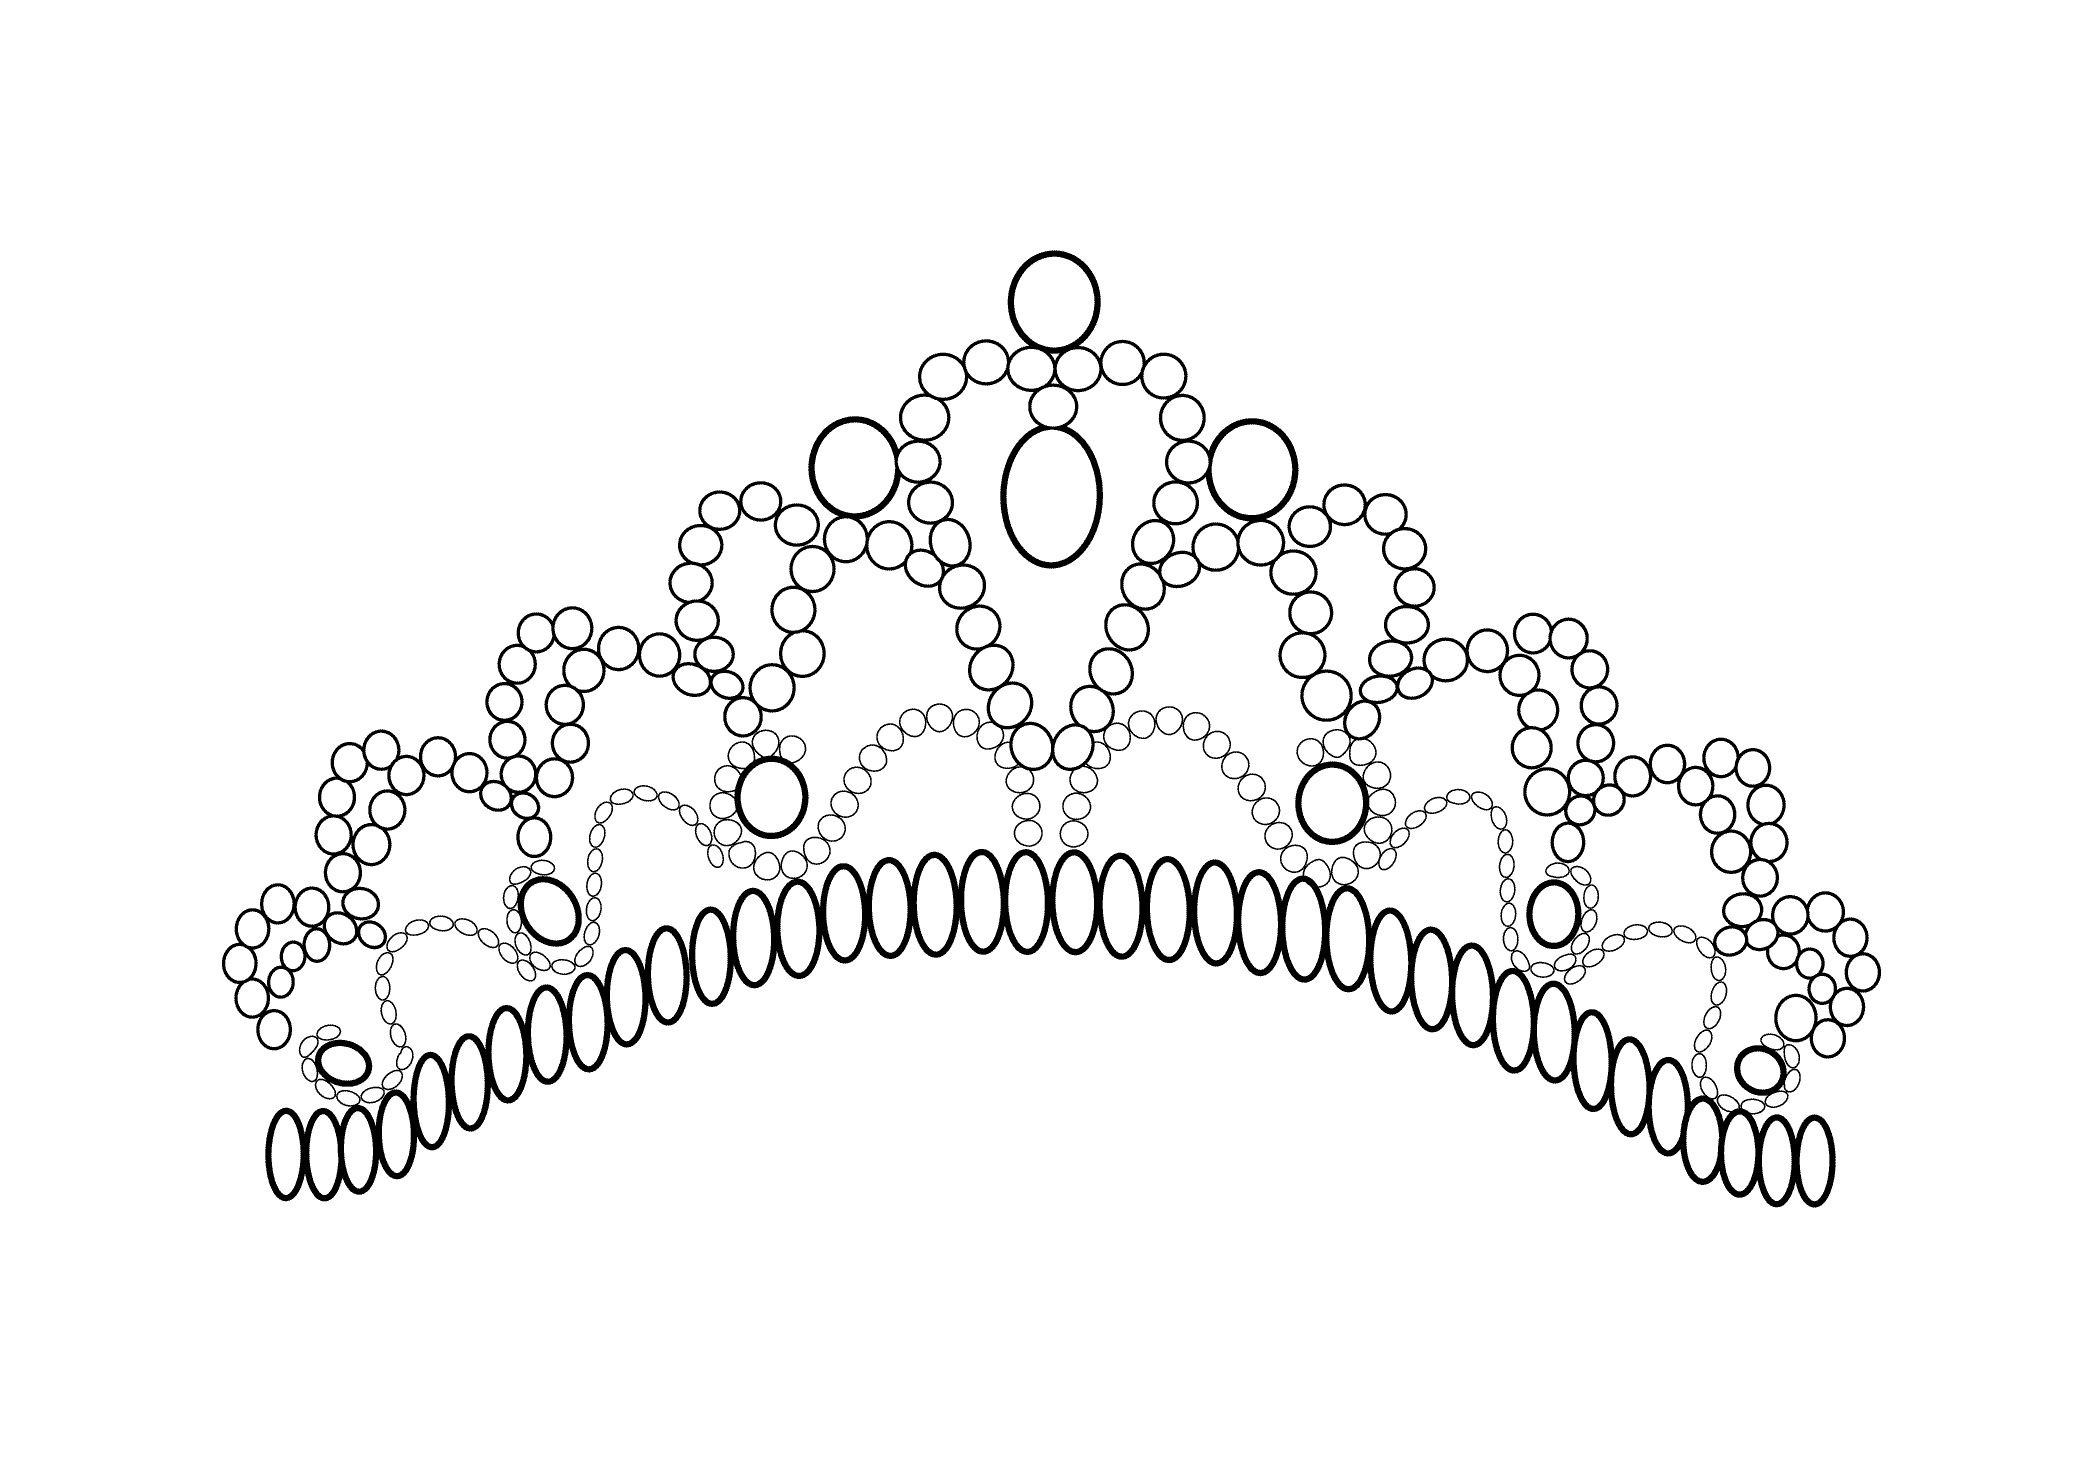 tiara coloring page free coloring pages download xsibe queen tiara